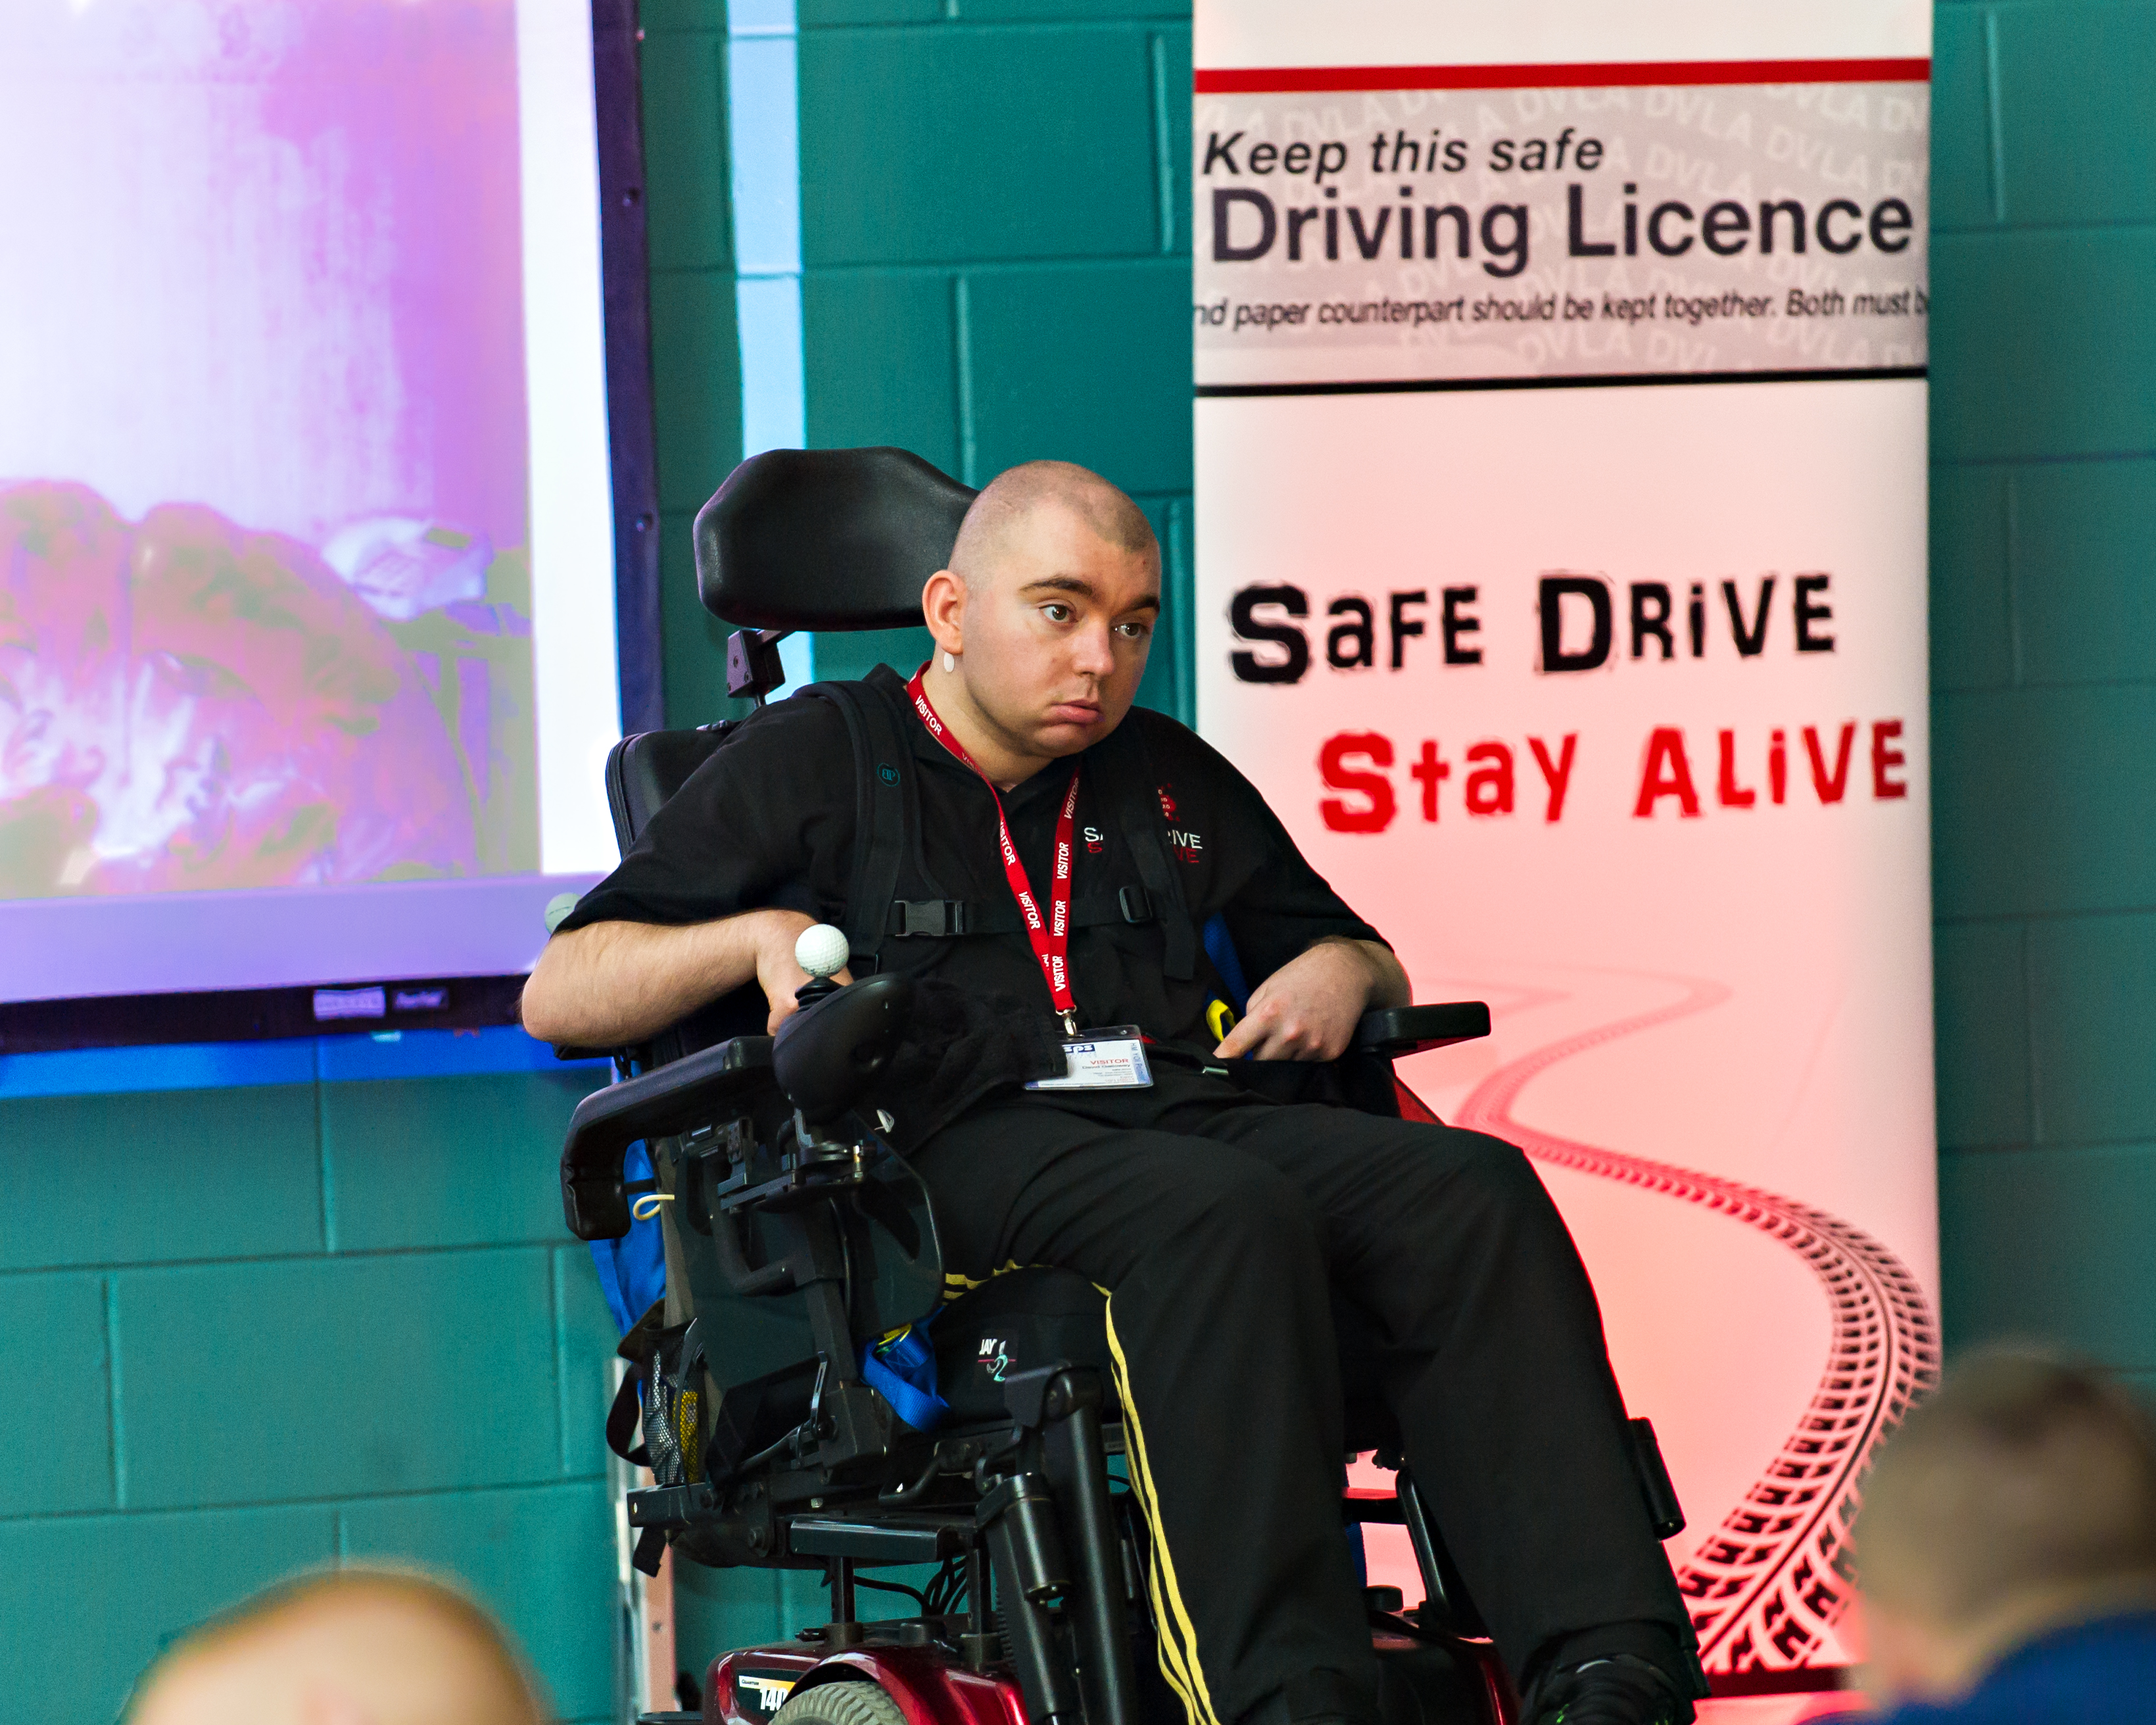 Safe Drive Stay Alive at HMYOI Polmont